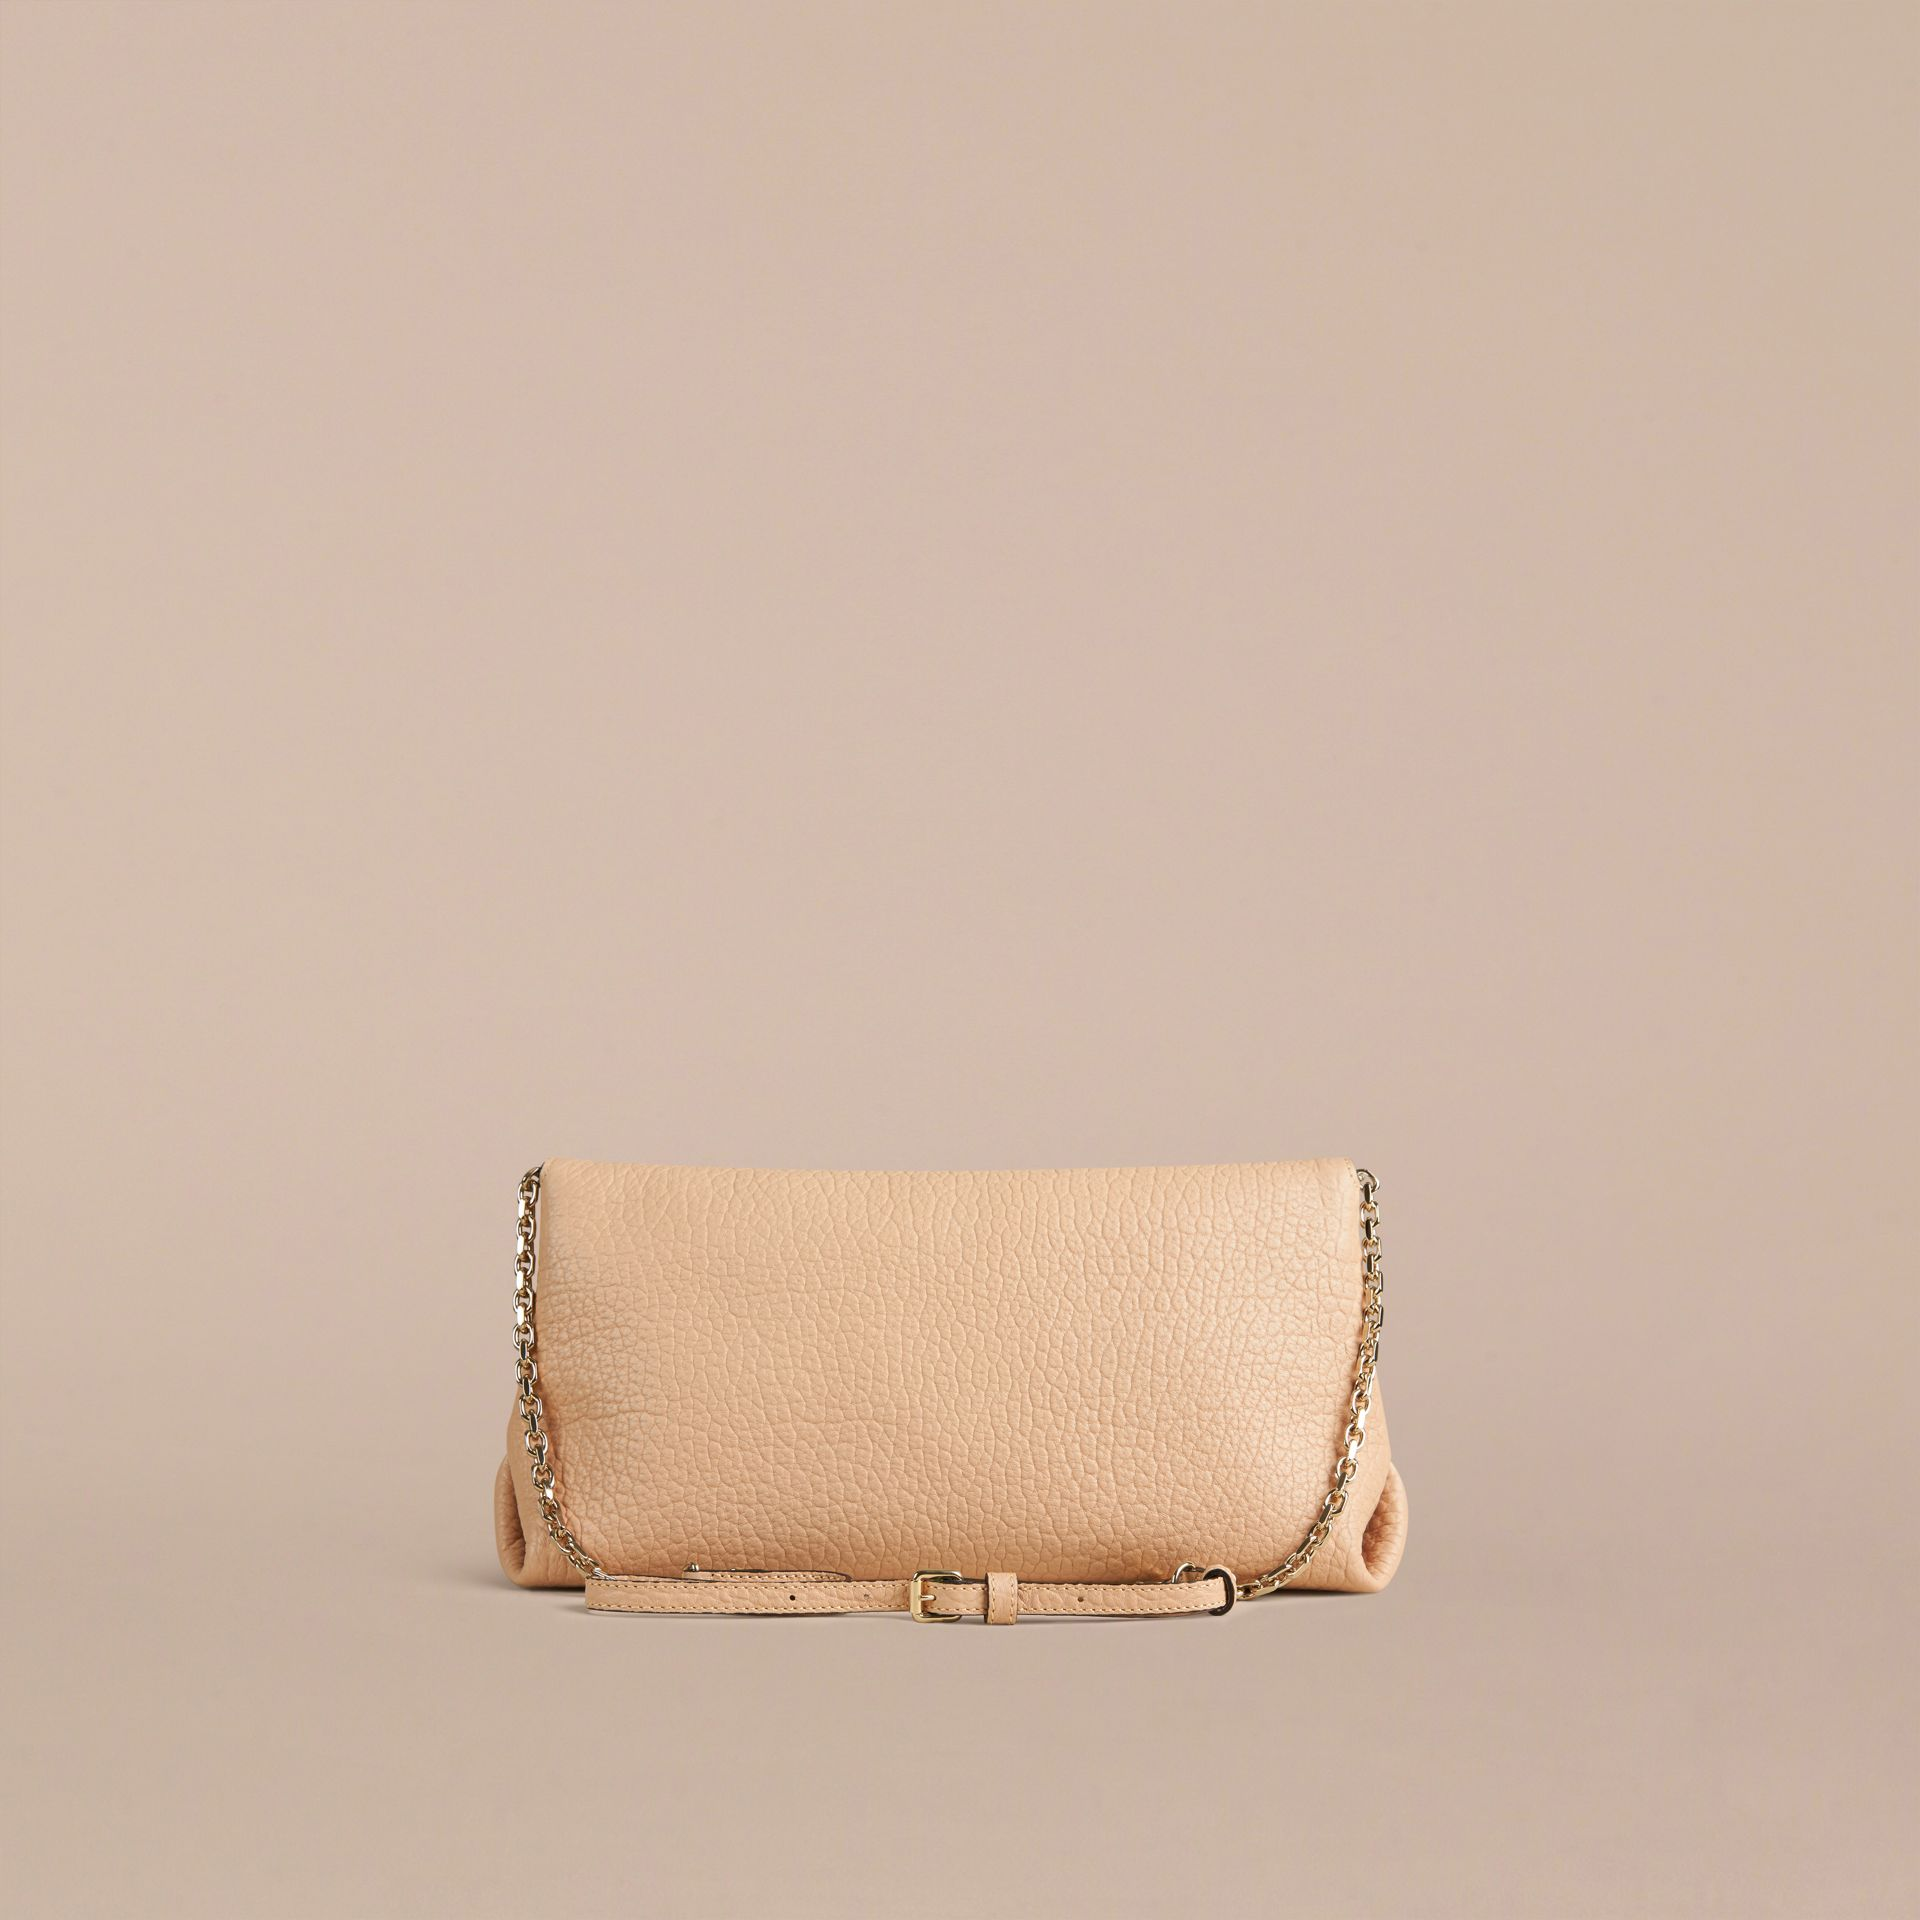 Pale apricot Medium Signature Grain Leather Clutch Bag Pale Apricot - gallery image 3